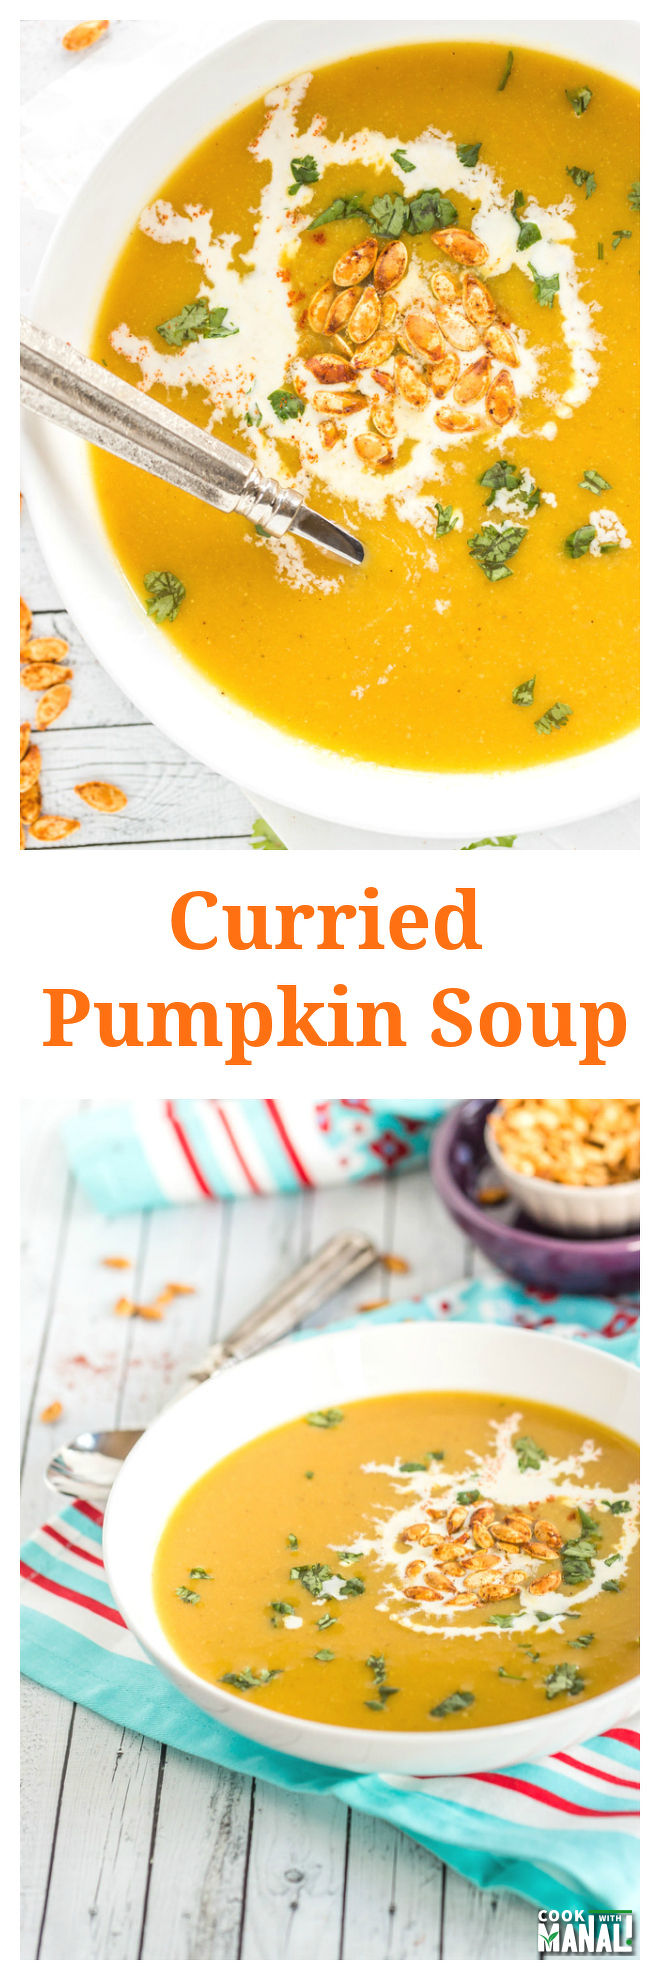 Curried Pumpkin Soup Collage